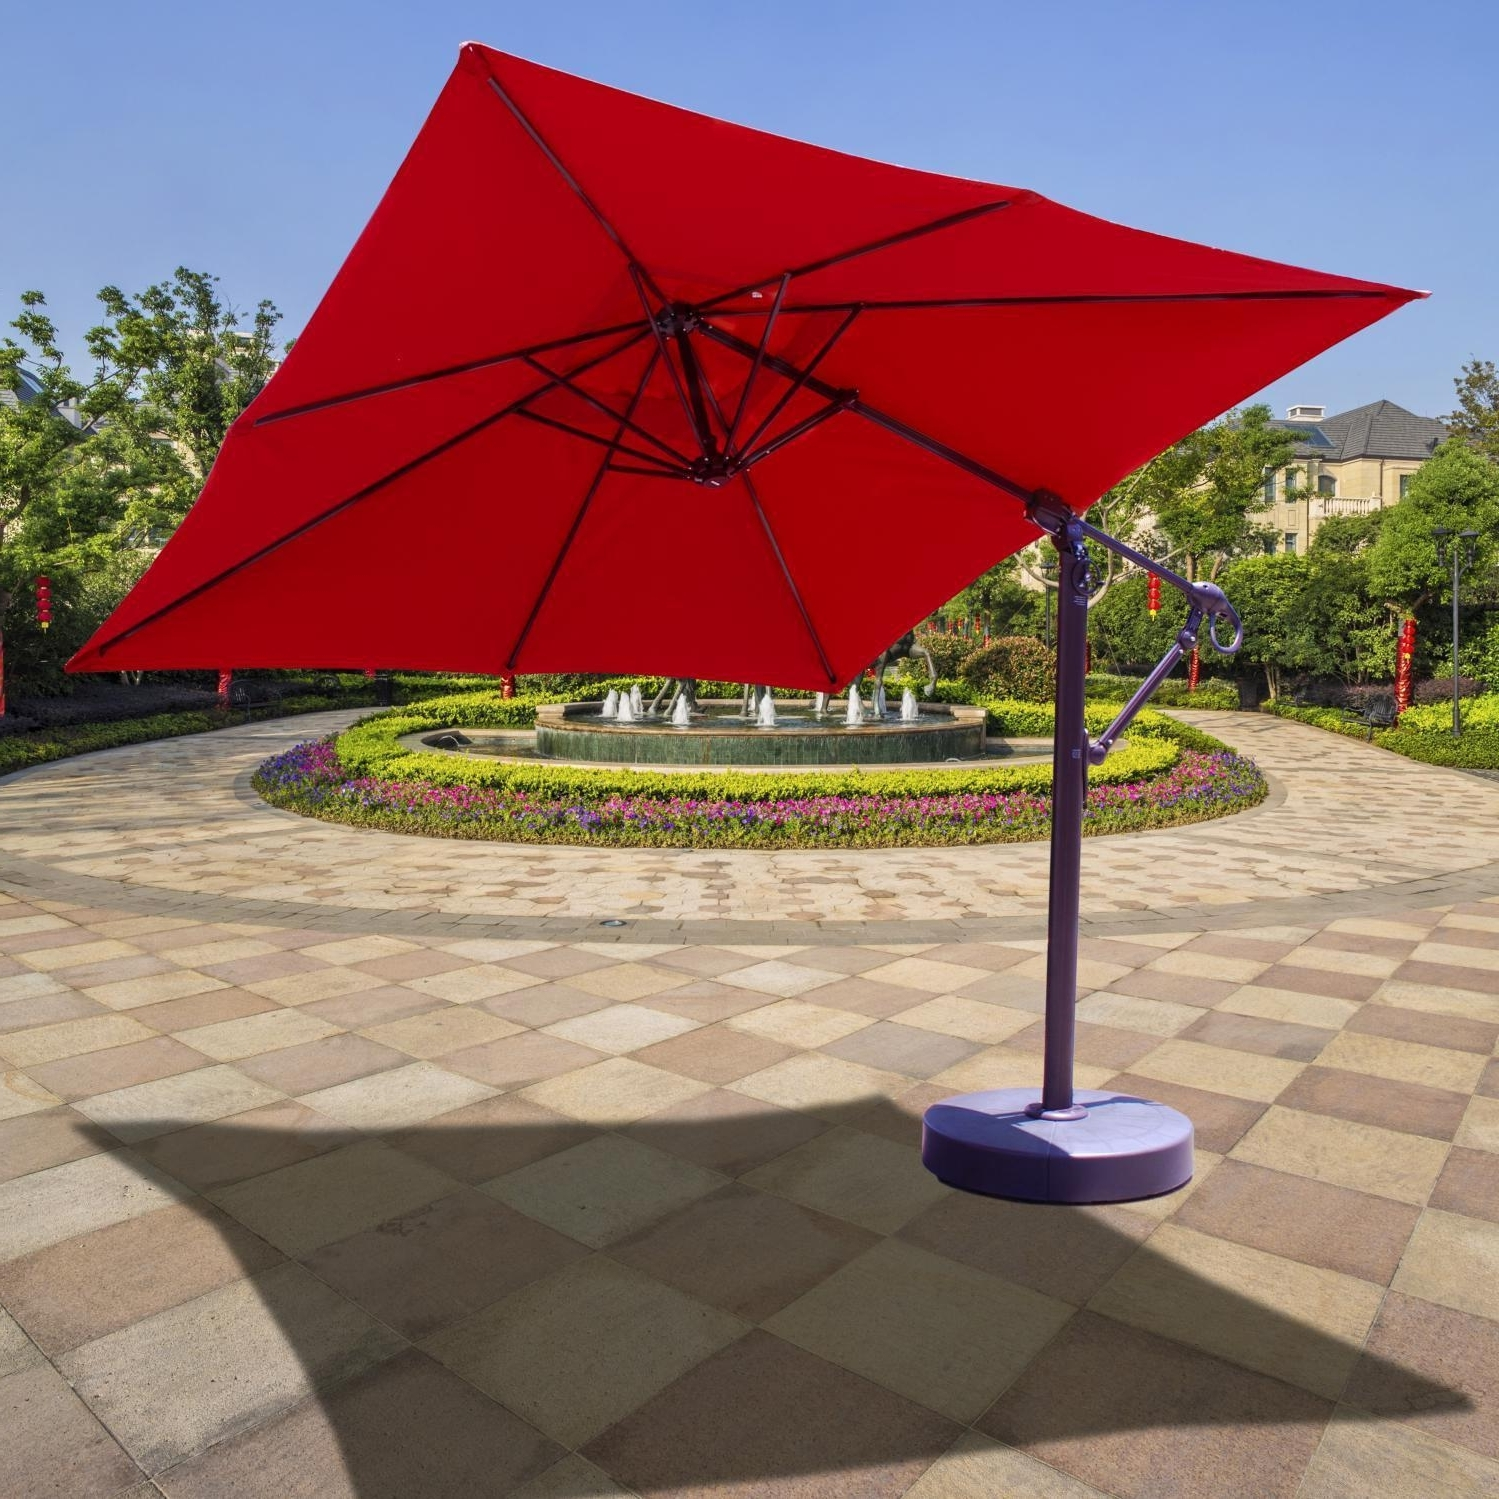 Most Recently Released Galtech 10 Ft Aluminum Square Cantilever Patio Umbrella With Easy With Square Cantilever Patio Umbrellas (View 8 of 20)